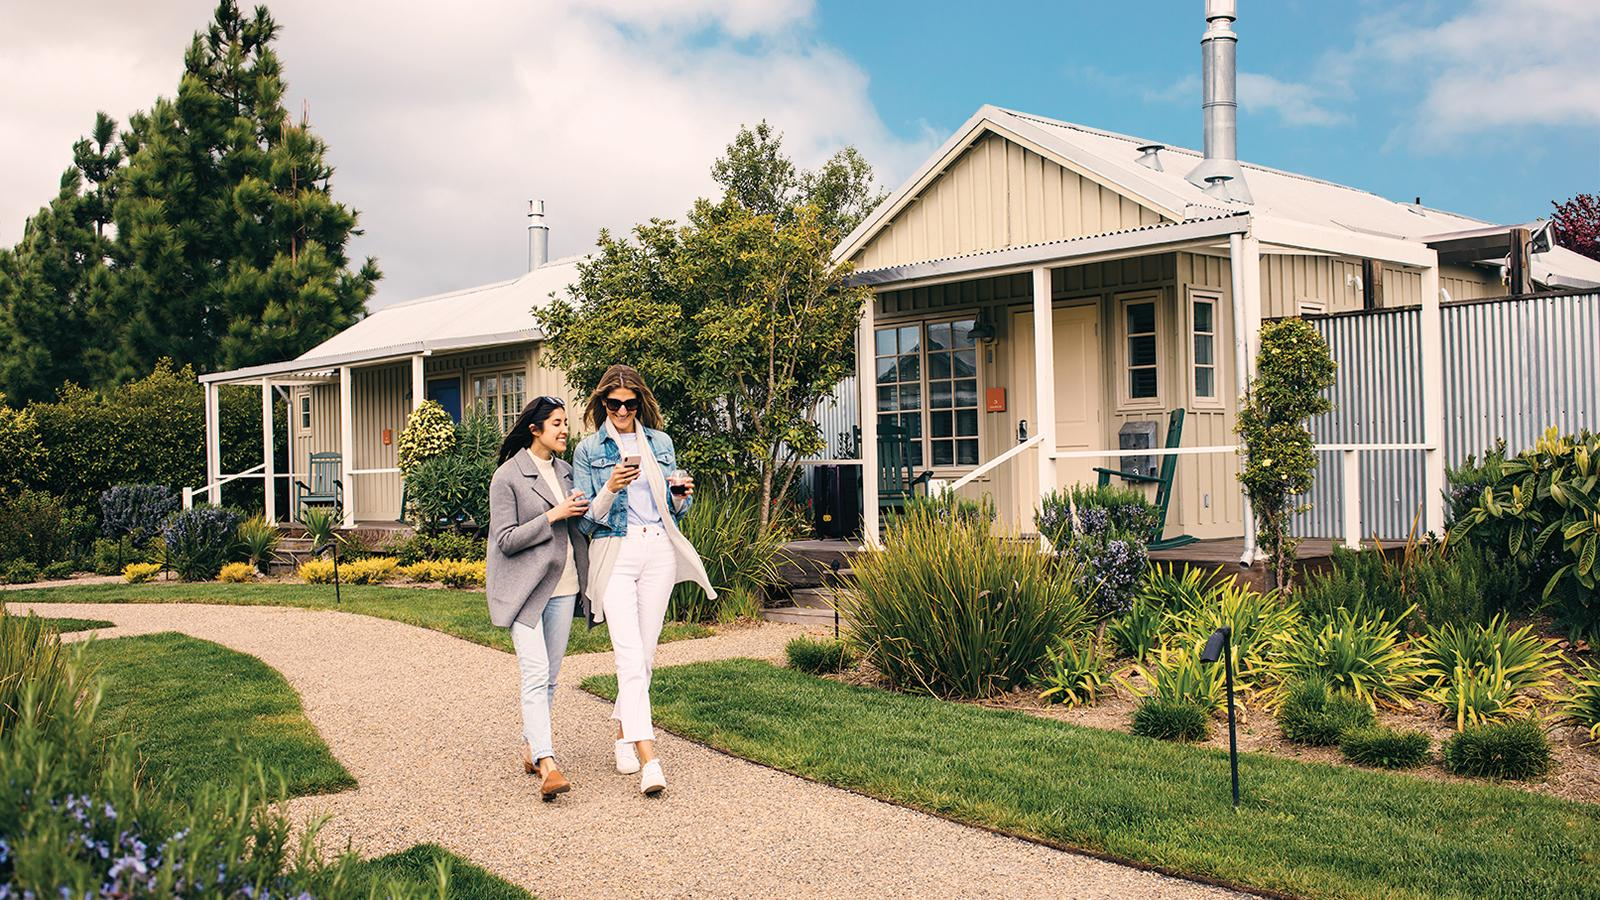 Napa: Where to Stay